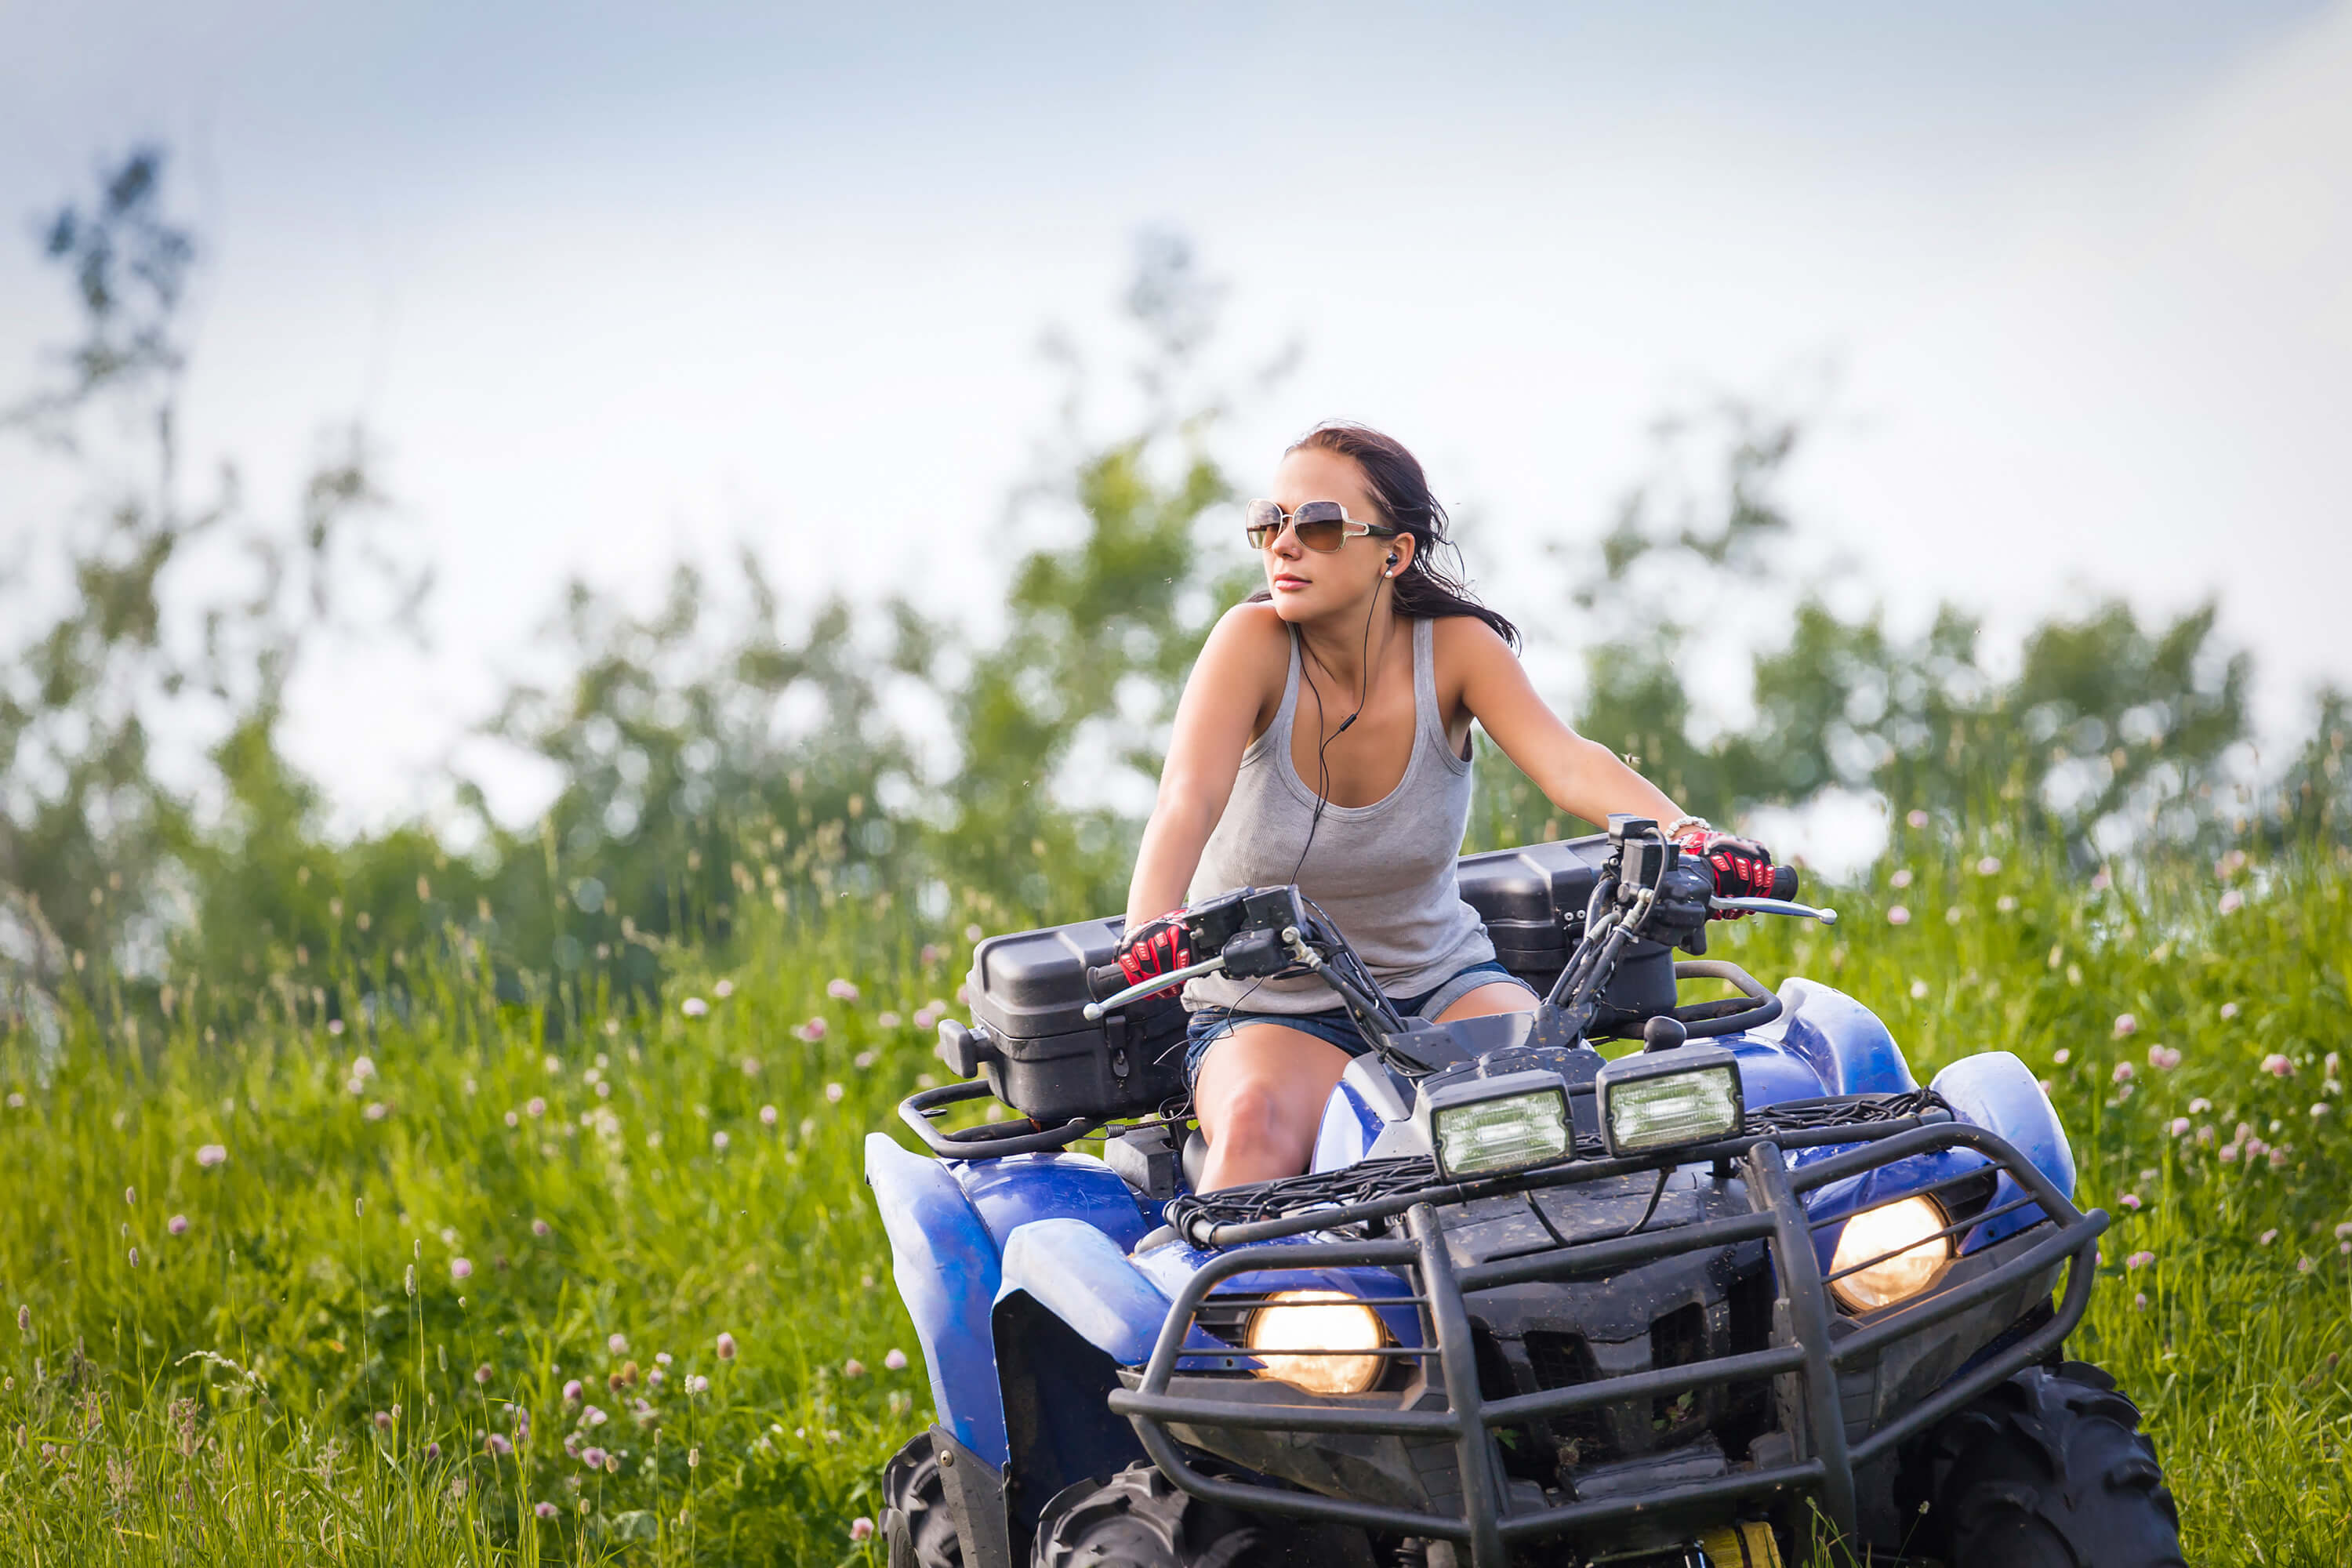 ATV Insurance from Hempkins Insurance